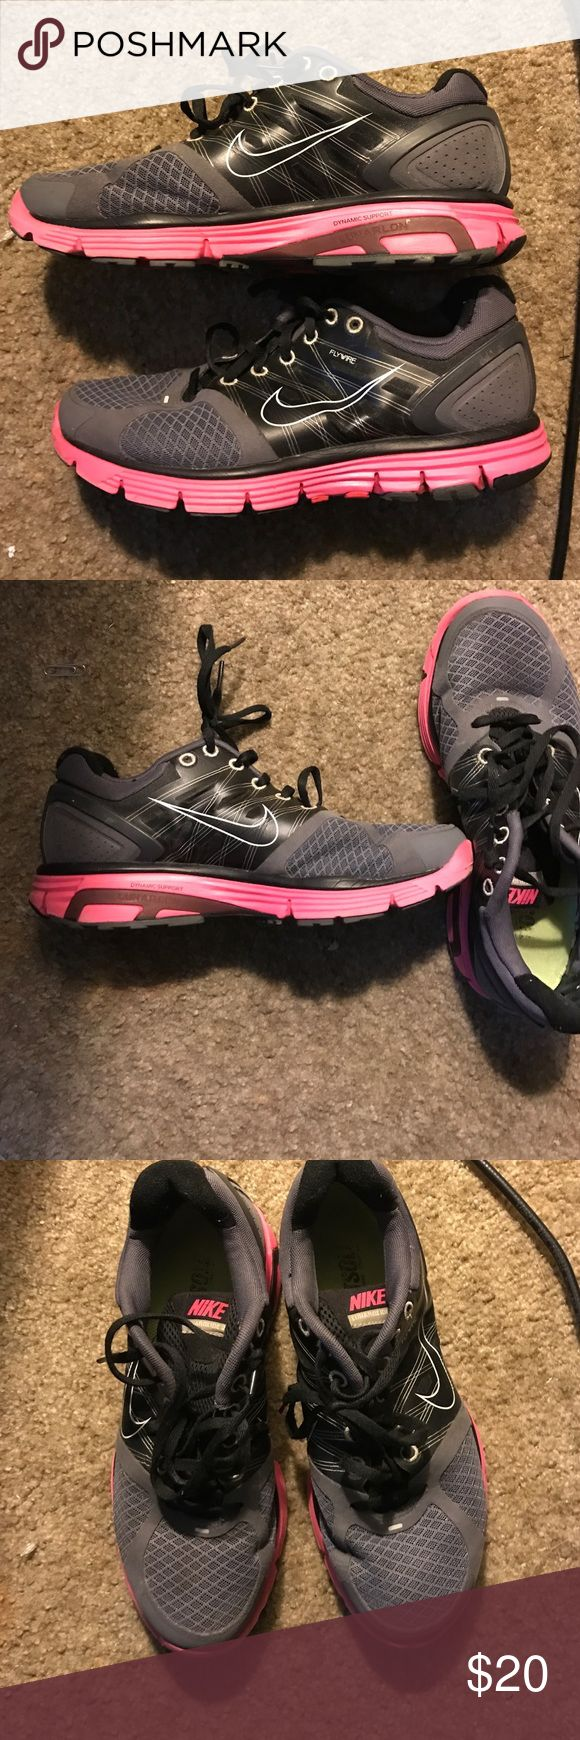 Like new Nike lunarglide 2 In great shape not really worn in at all Nike Shoes Sneakers